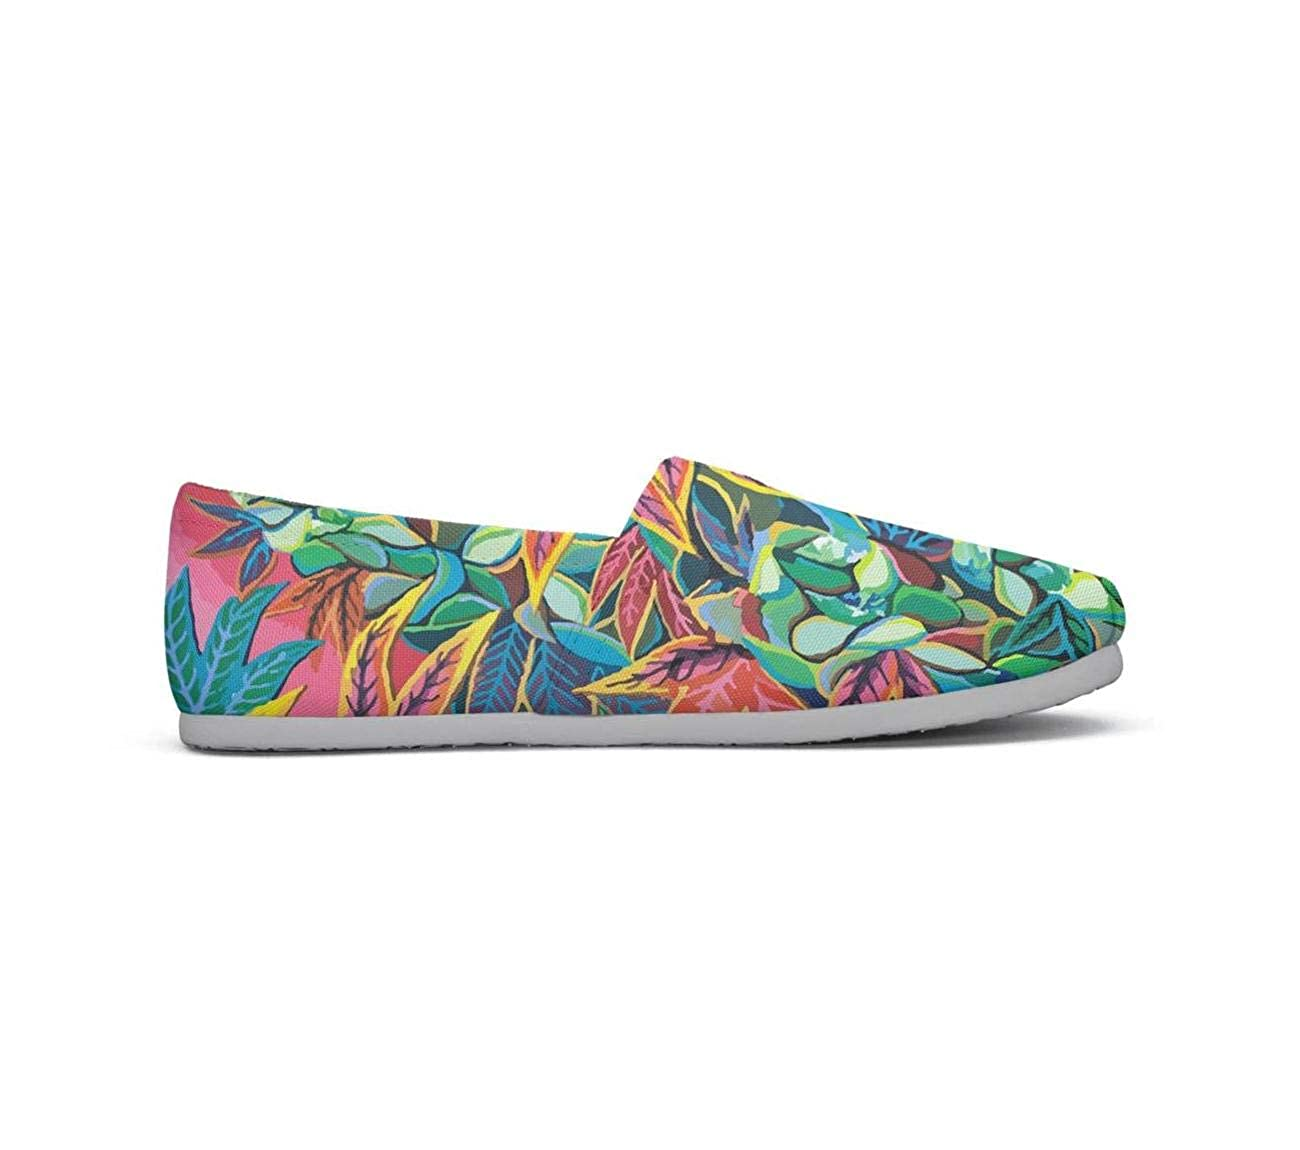 Charming Cannabis Leaves Classics Womens Comfort Flat Boat Shoes Ladies Loafer Shoes